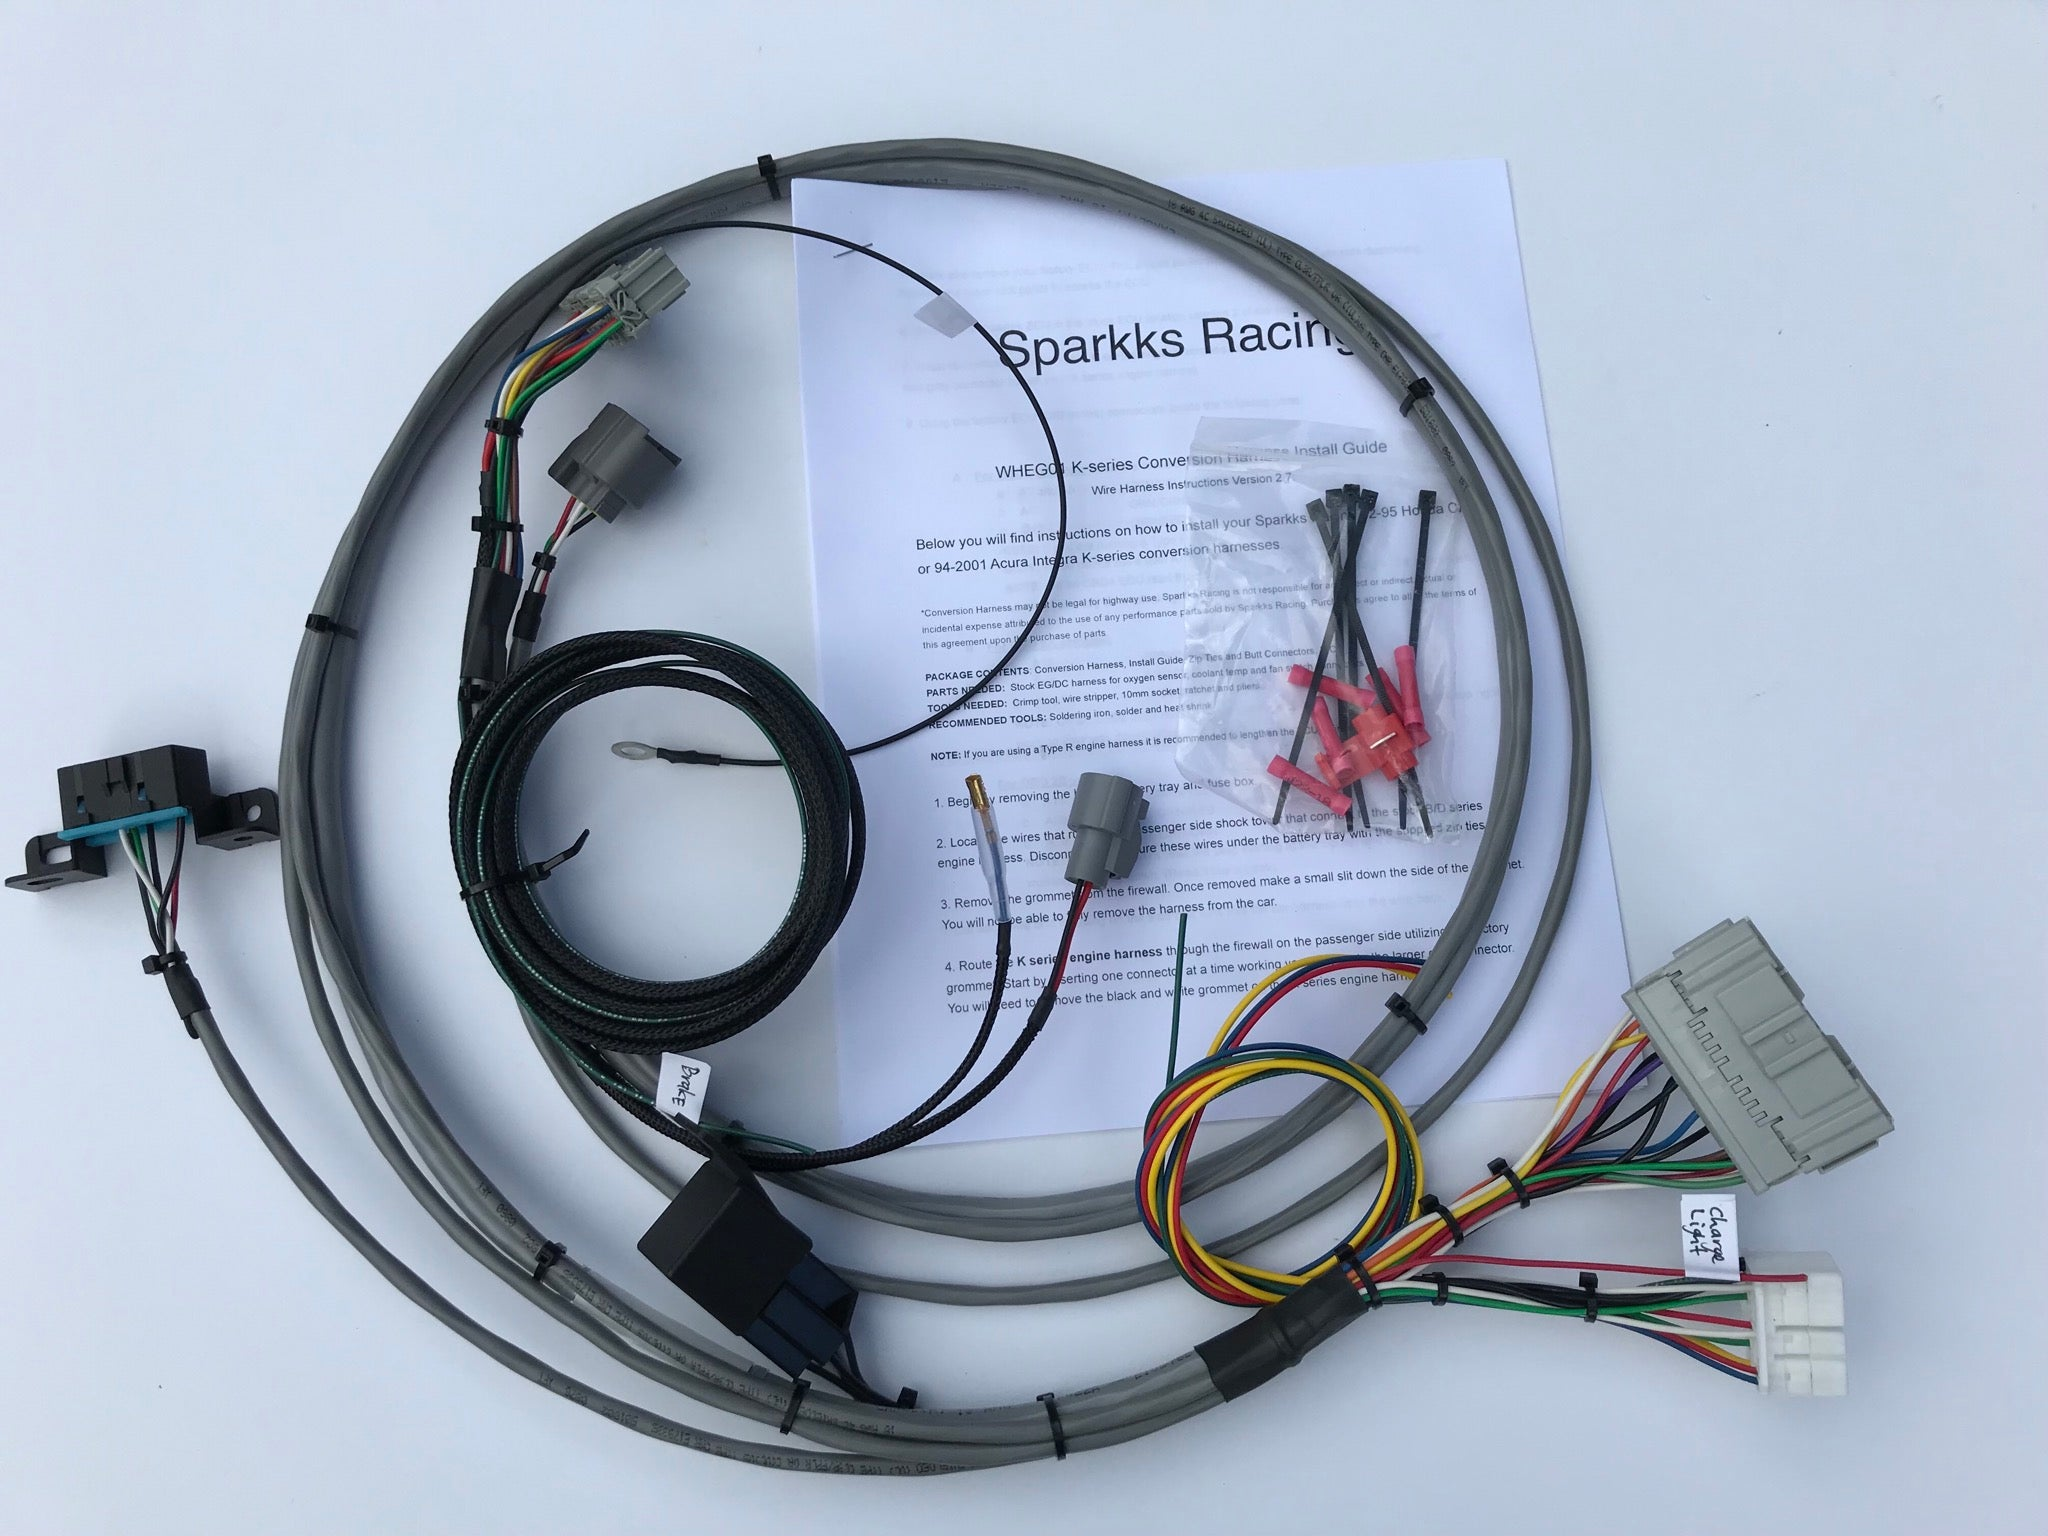 hight resolution of sparkks racing honda kseries conversion harness 92 95 civic or 94image of sparkks racing honda kseries